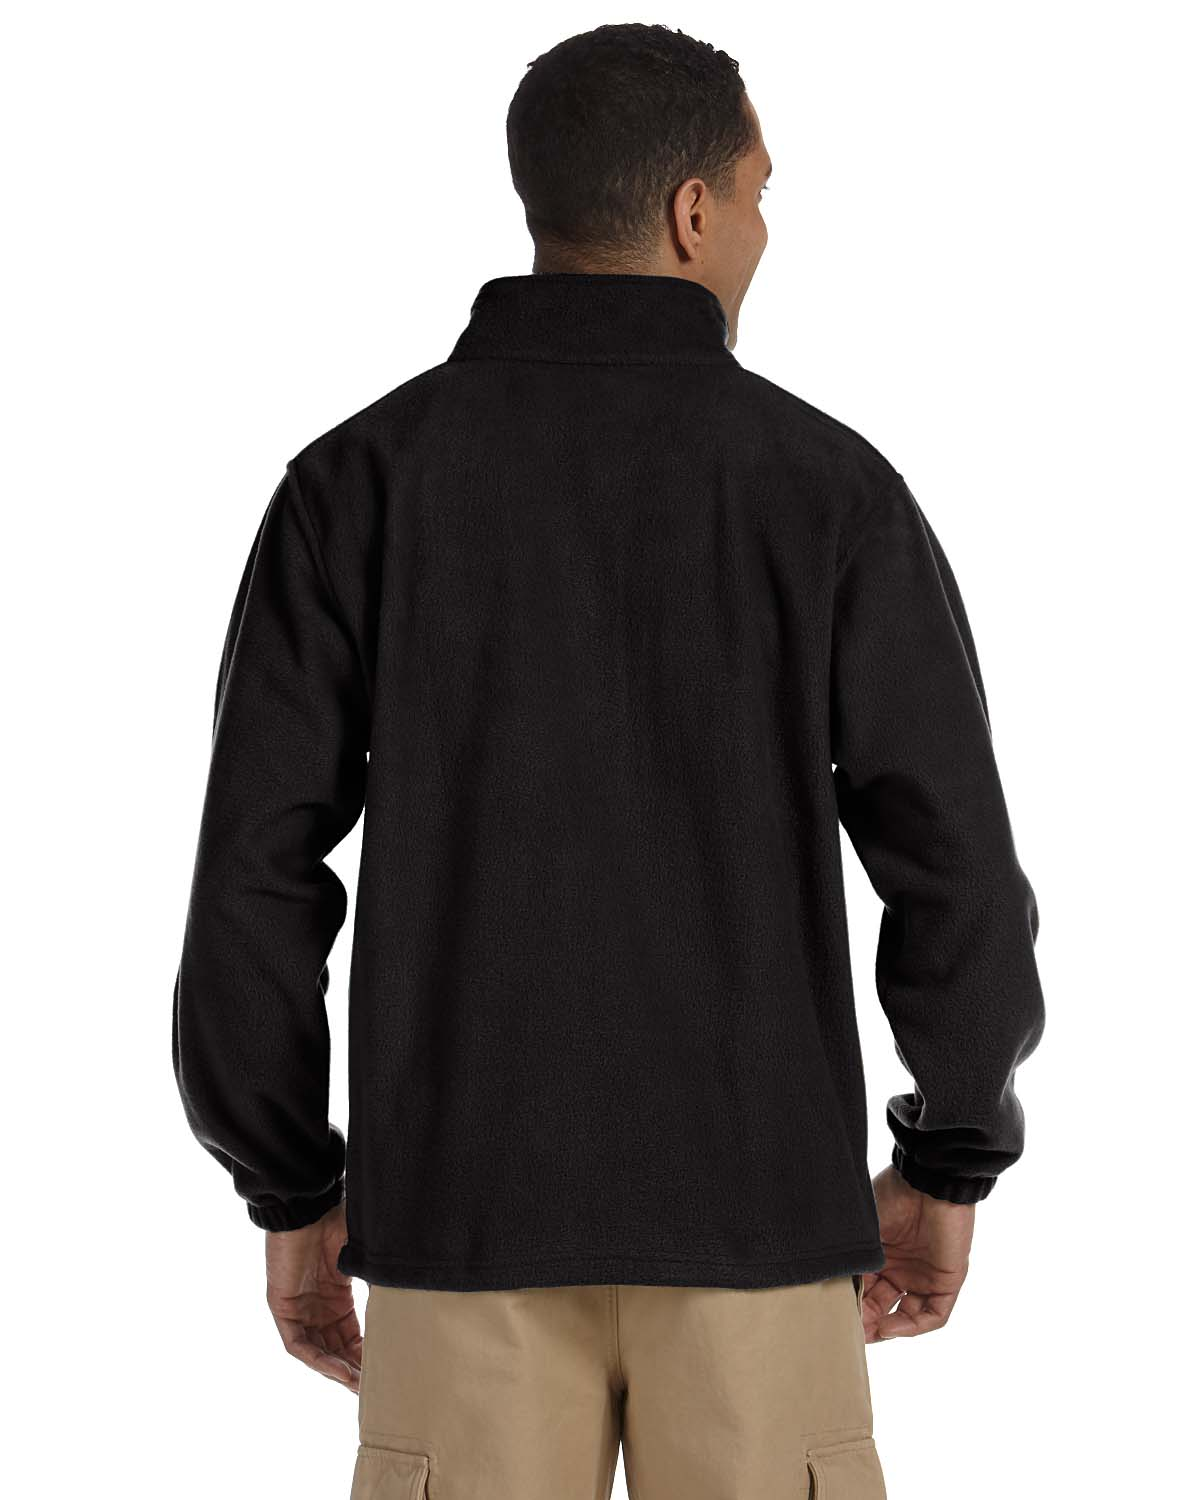 Harriton-Jacket-Men-039-s-8-oz-Full-Zip-Fleece-Solid-S-XL-R-M990 thumbnail 6